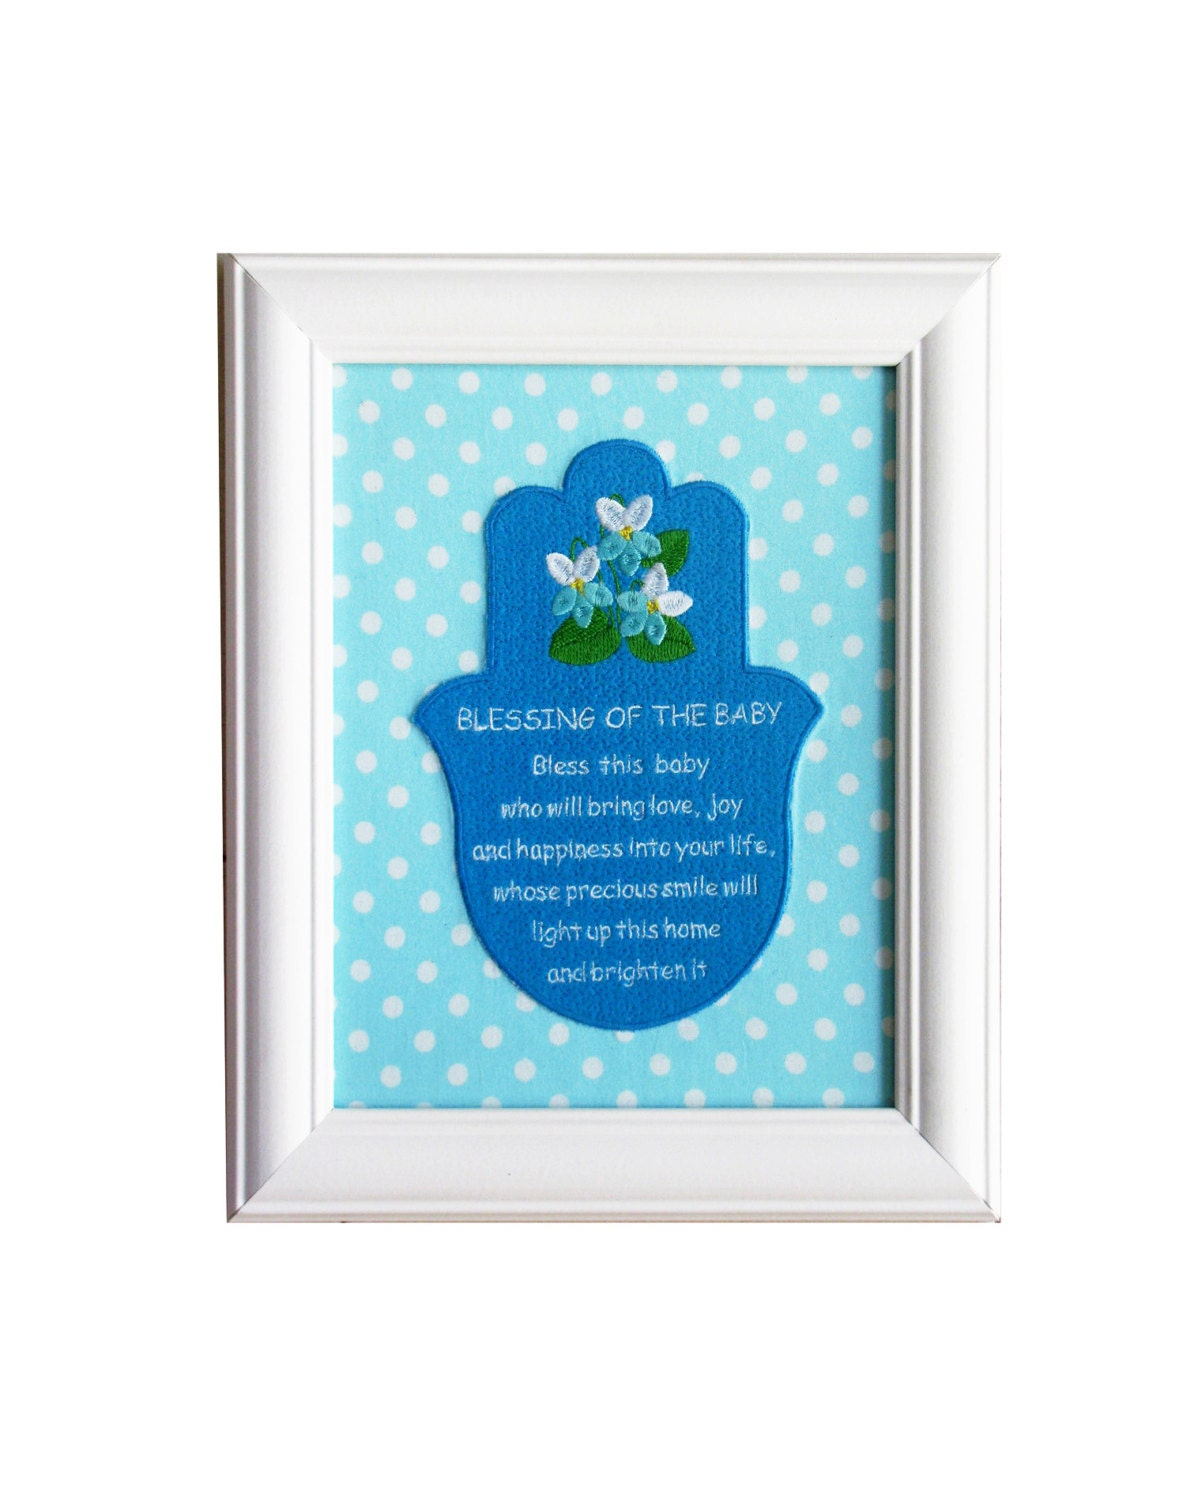 Baby blessing hamsa wall art nursery gift baby room for Room decor gifts